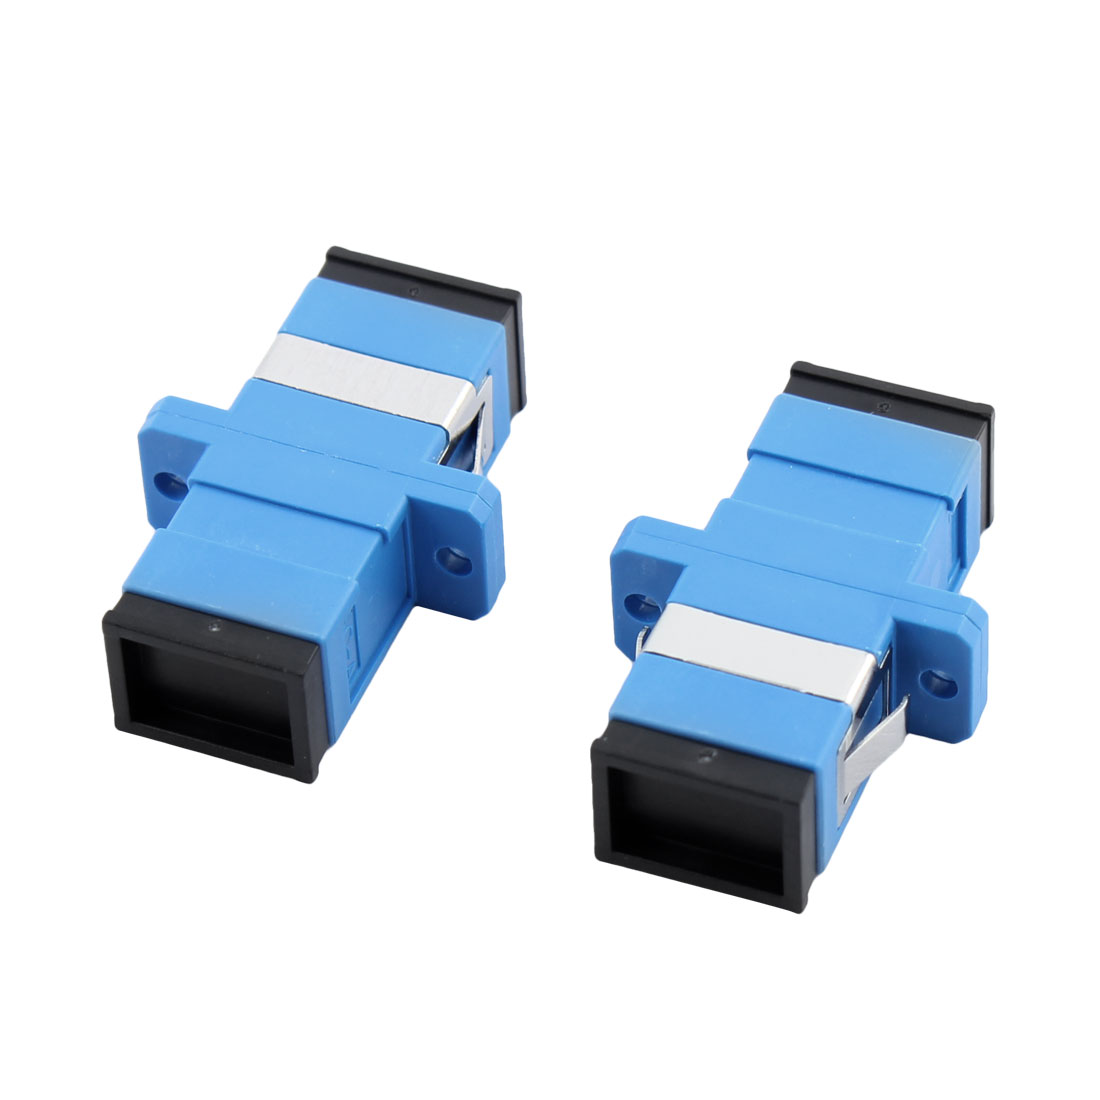 SC/SC Flange Fiber Optical 5 DB Attenuator Connector Adapter Coupler 2 Pcs